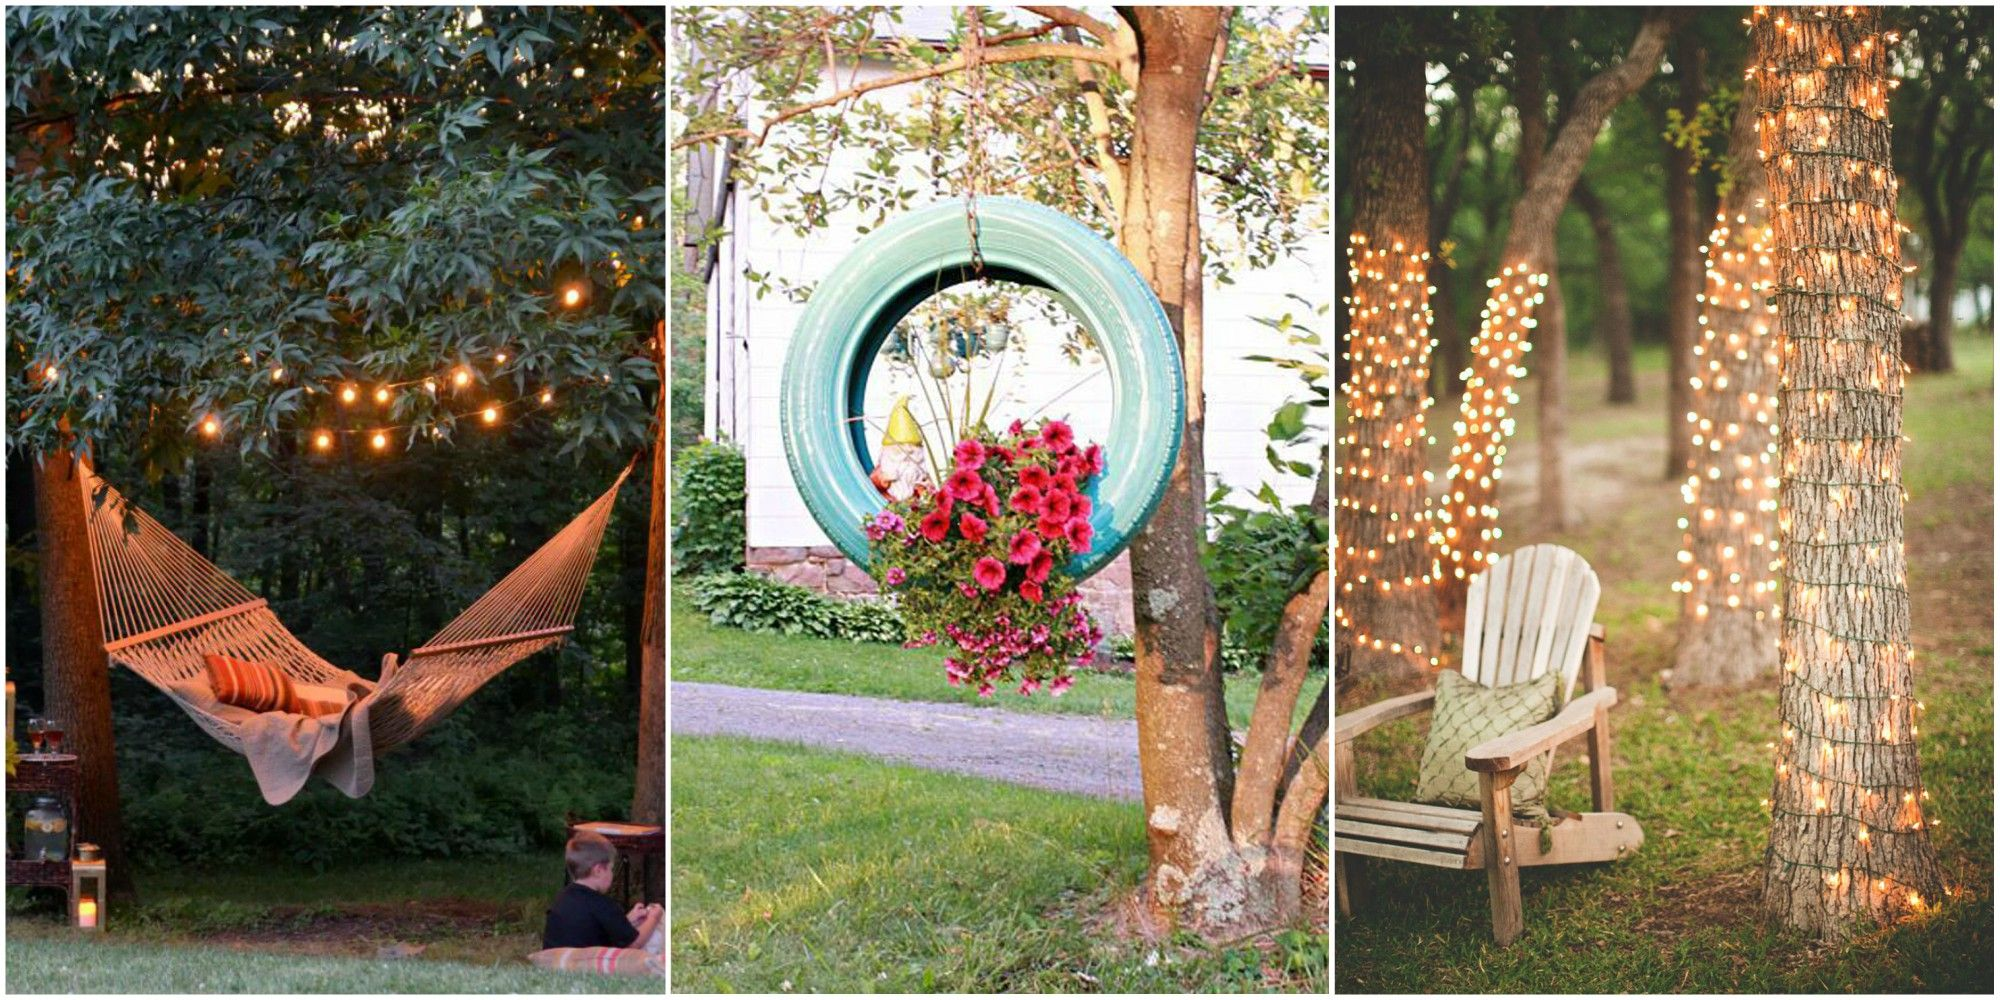 backyard decorating ideas : outdoor decorating ideas - www.pureclipart.com